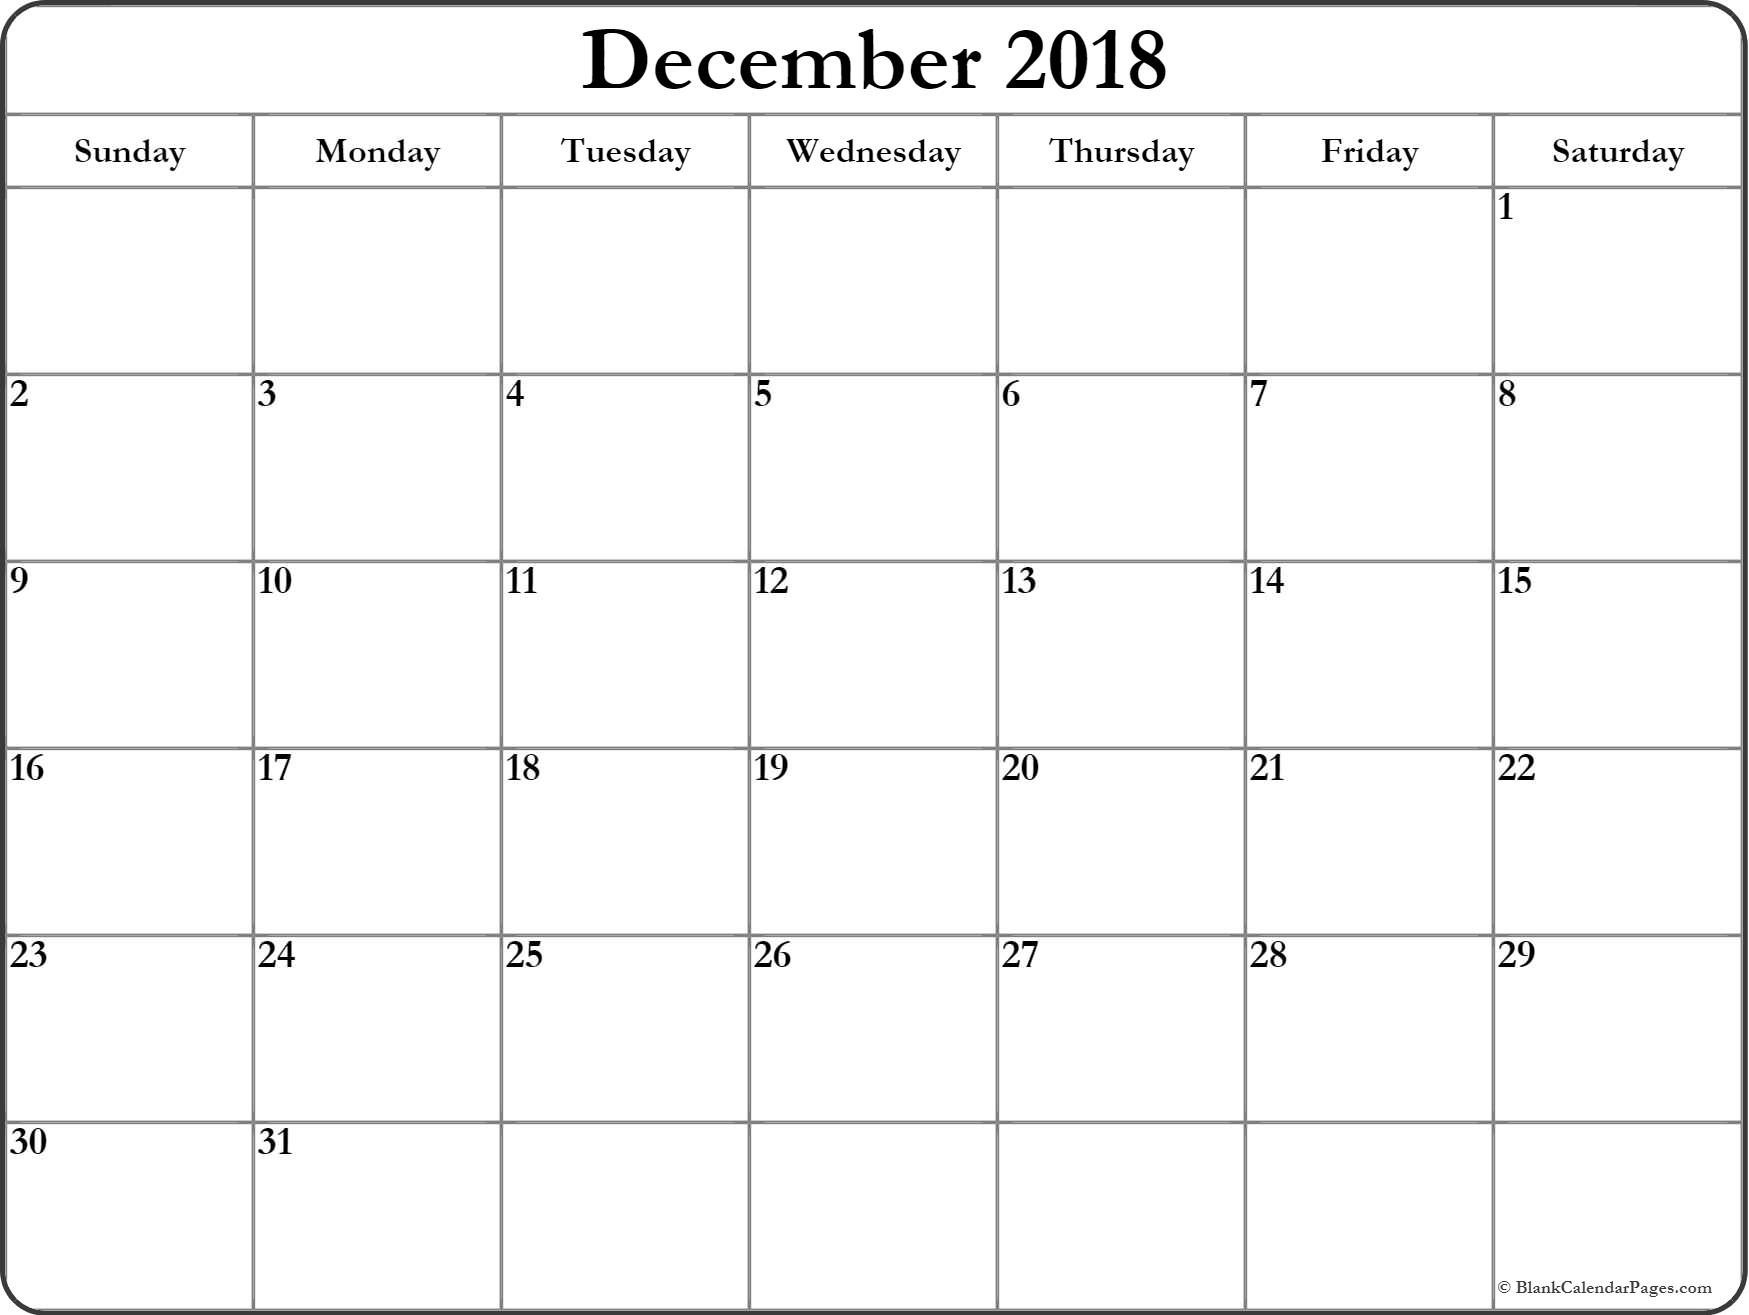 Best} Free* Blank December 2018 Calendar Templates Printable With Notes